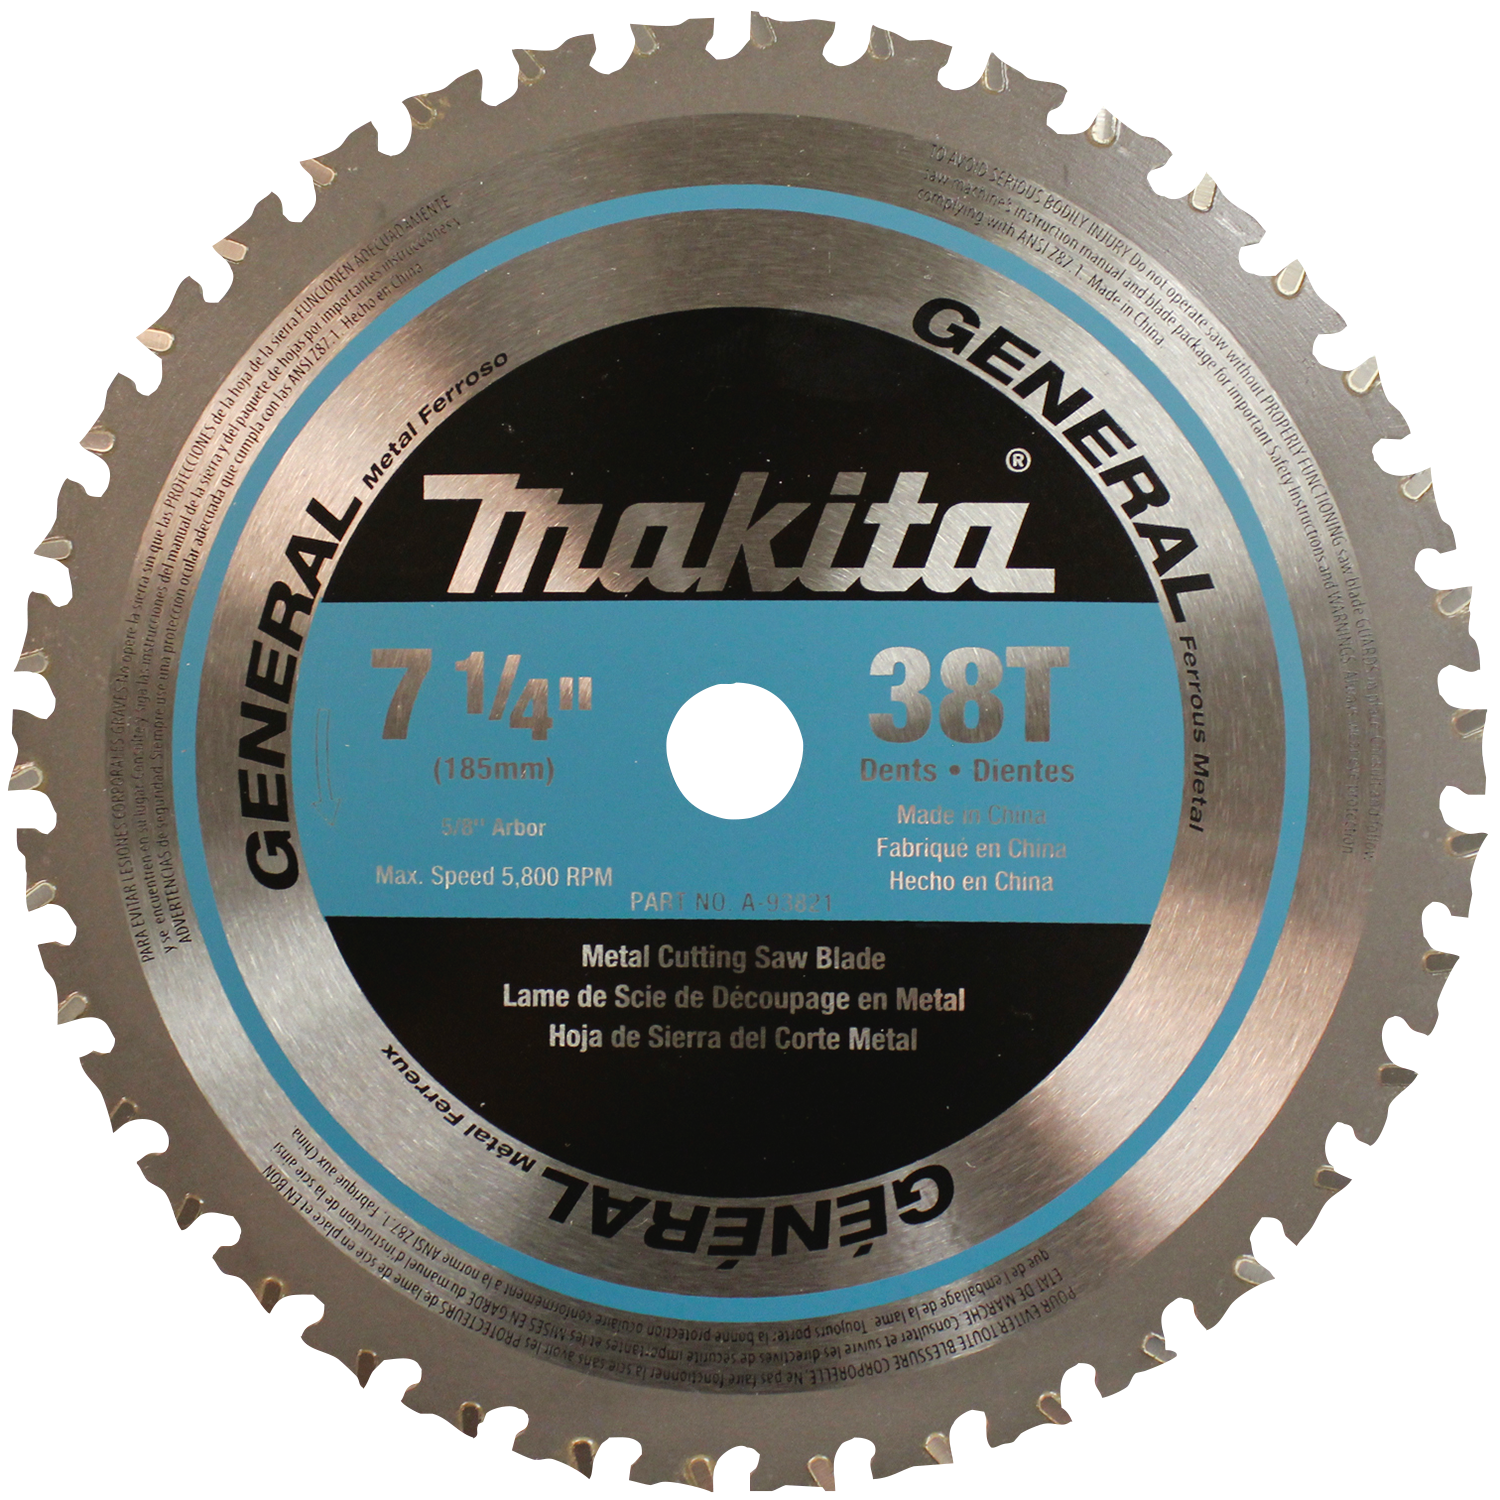 Makita usa product details a 93821 a 93821 greentooth Gallery